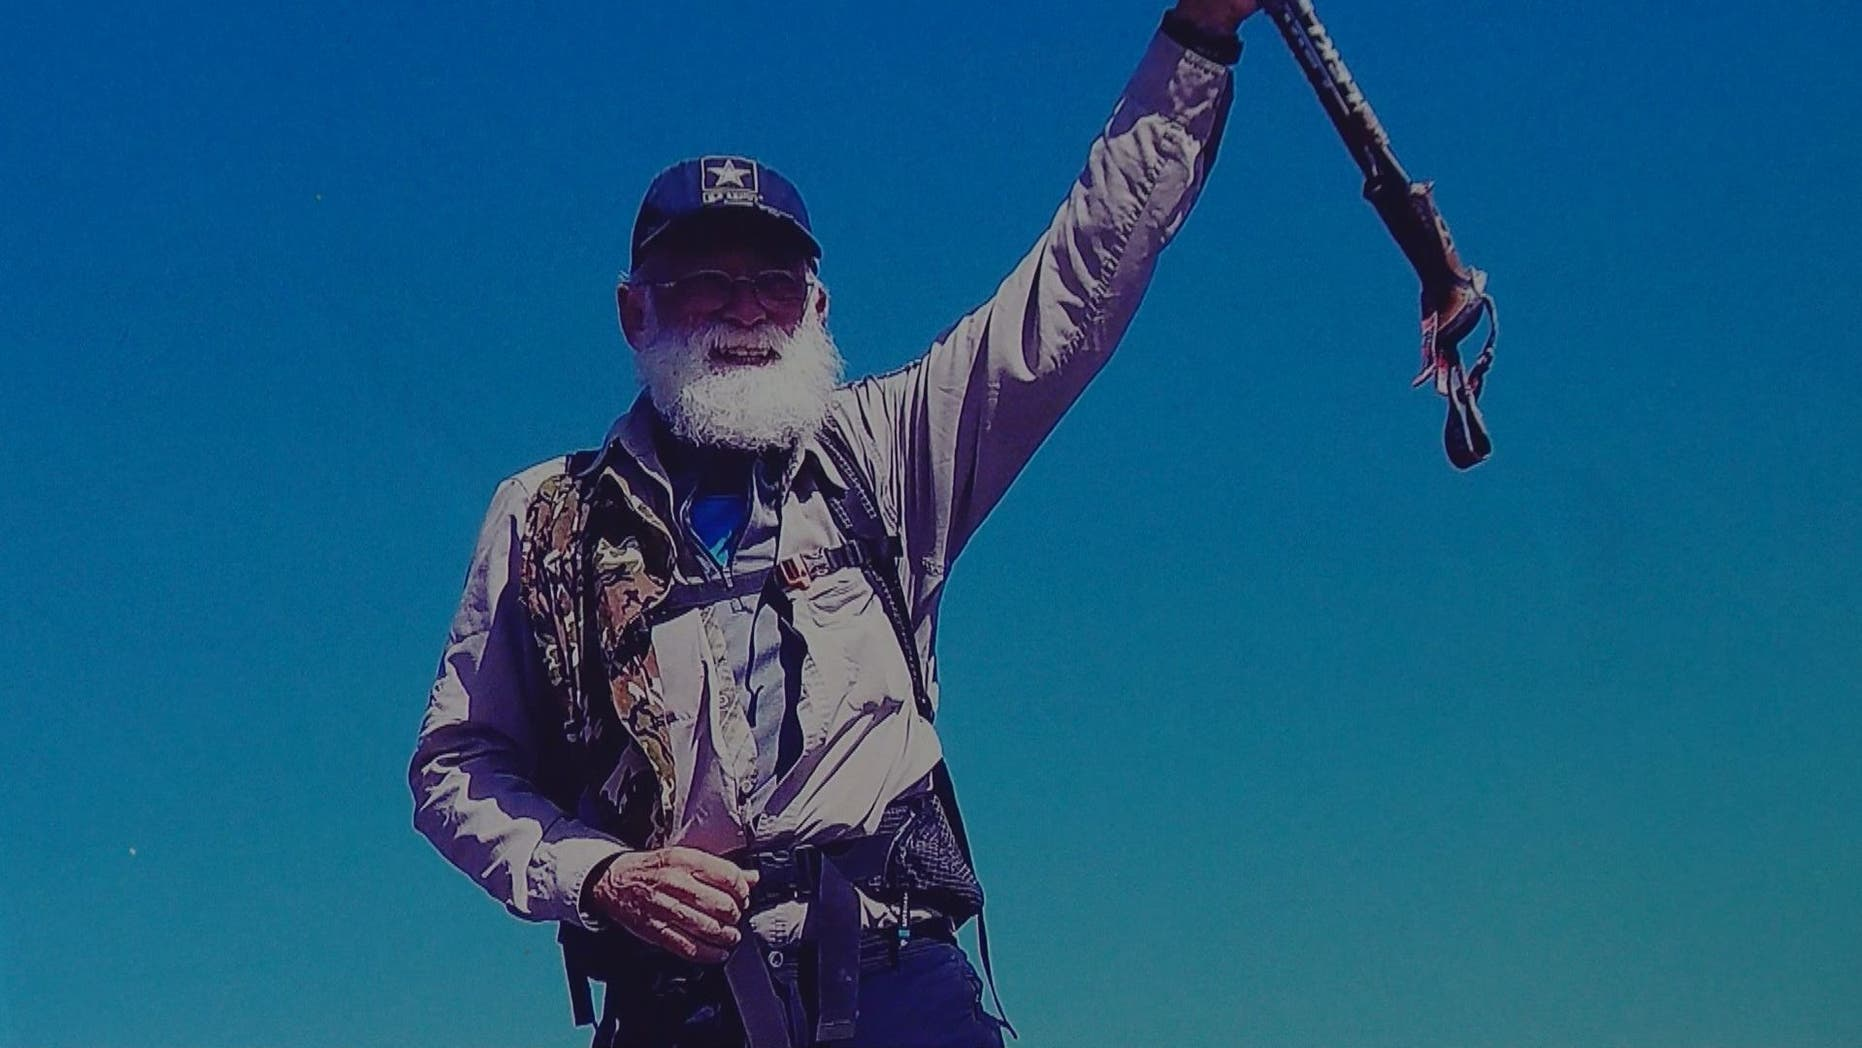 Tom Young, 75, completed his five-month hike on the Appalachian Trail Monday.